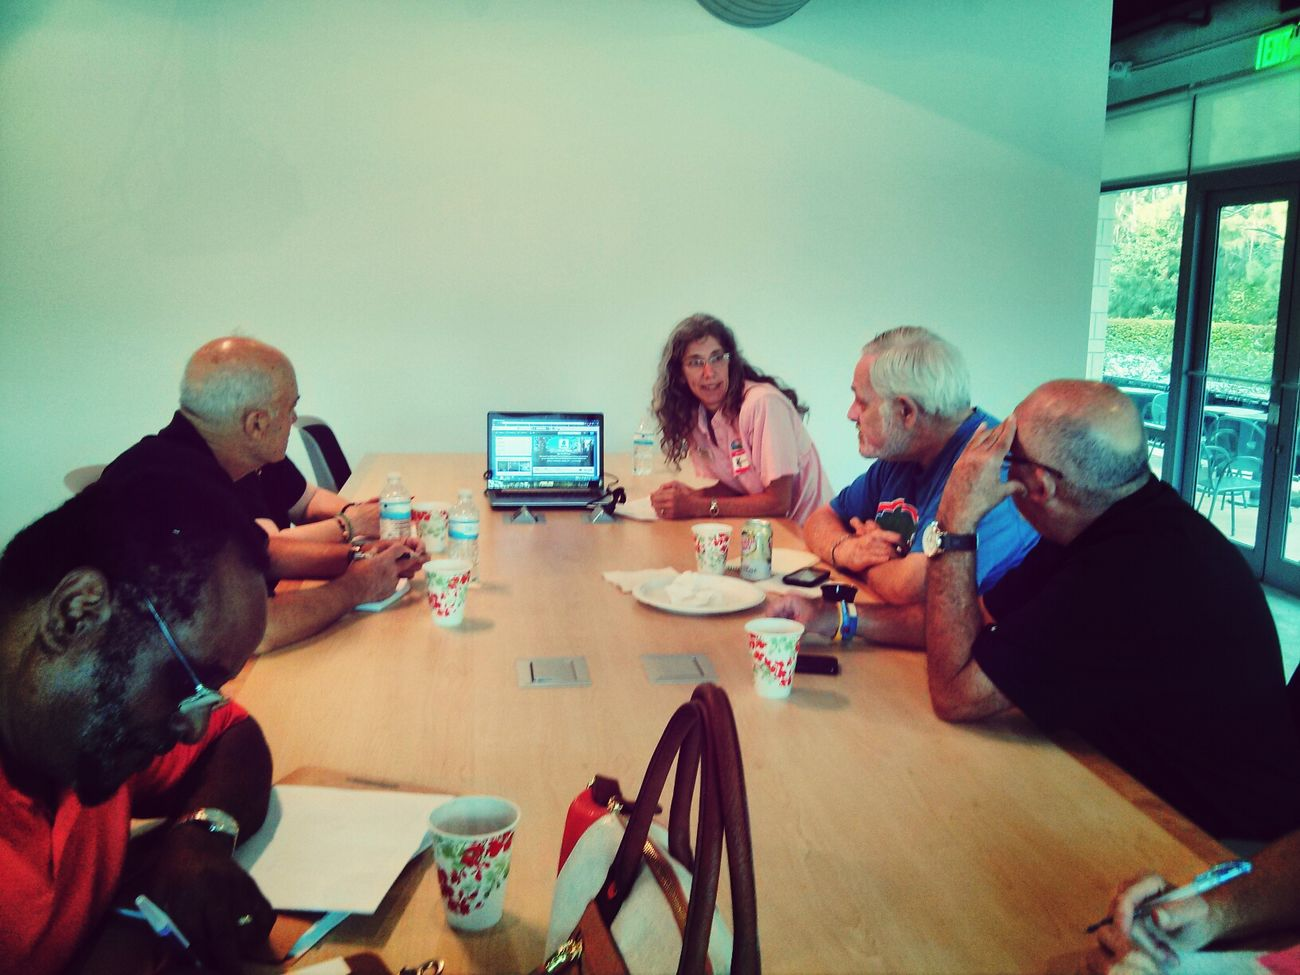 Socmedsep Nfn4good Swfl twitter group at last night's 501TechClub SWFL meeting w/ Deb Hanson, @crewtrust